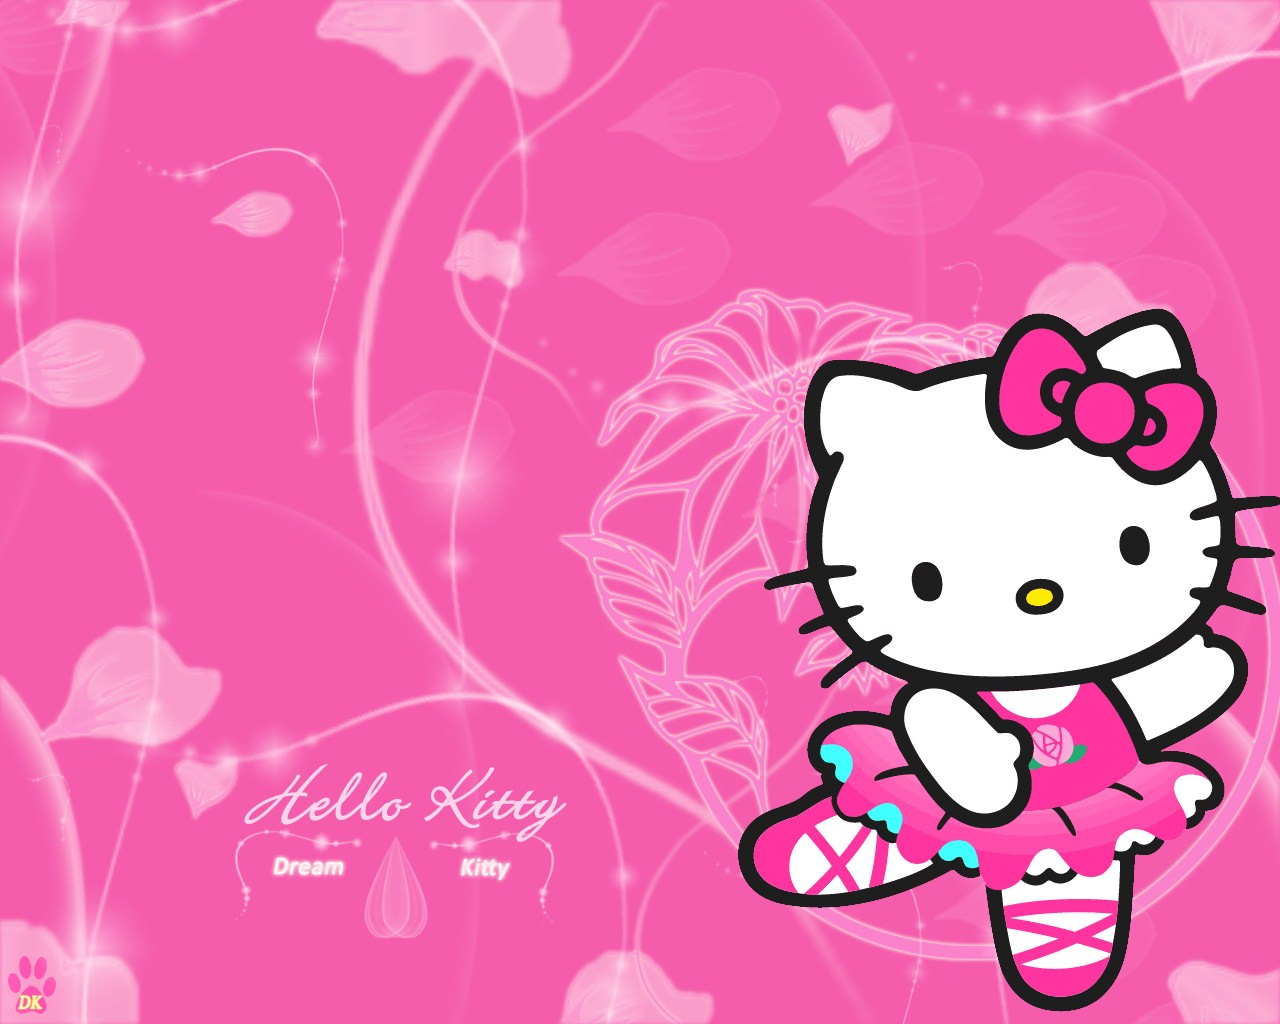 Free 15 Hello Kitty Hd Backgrounds In Psd Ai